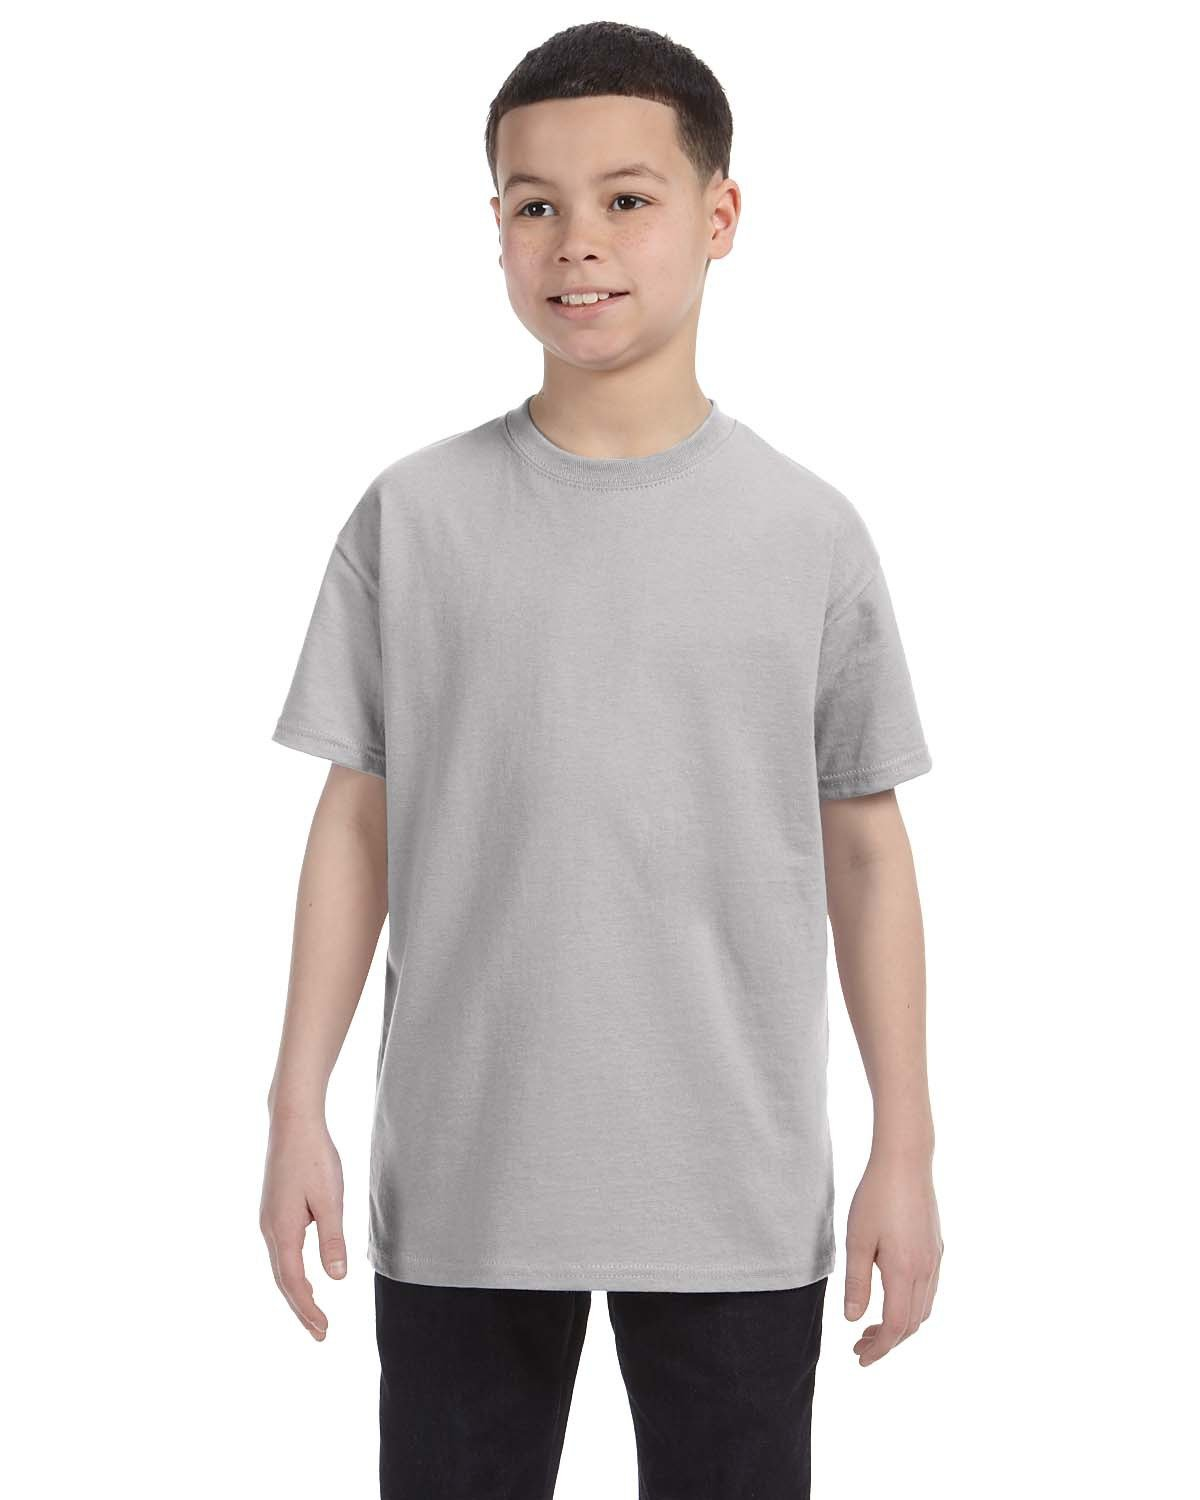 Hanes Youth Authentic-T T-Shirt LIGHT STEEL